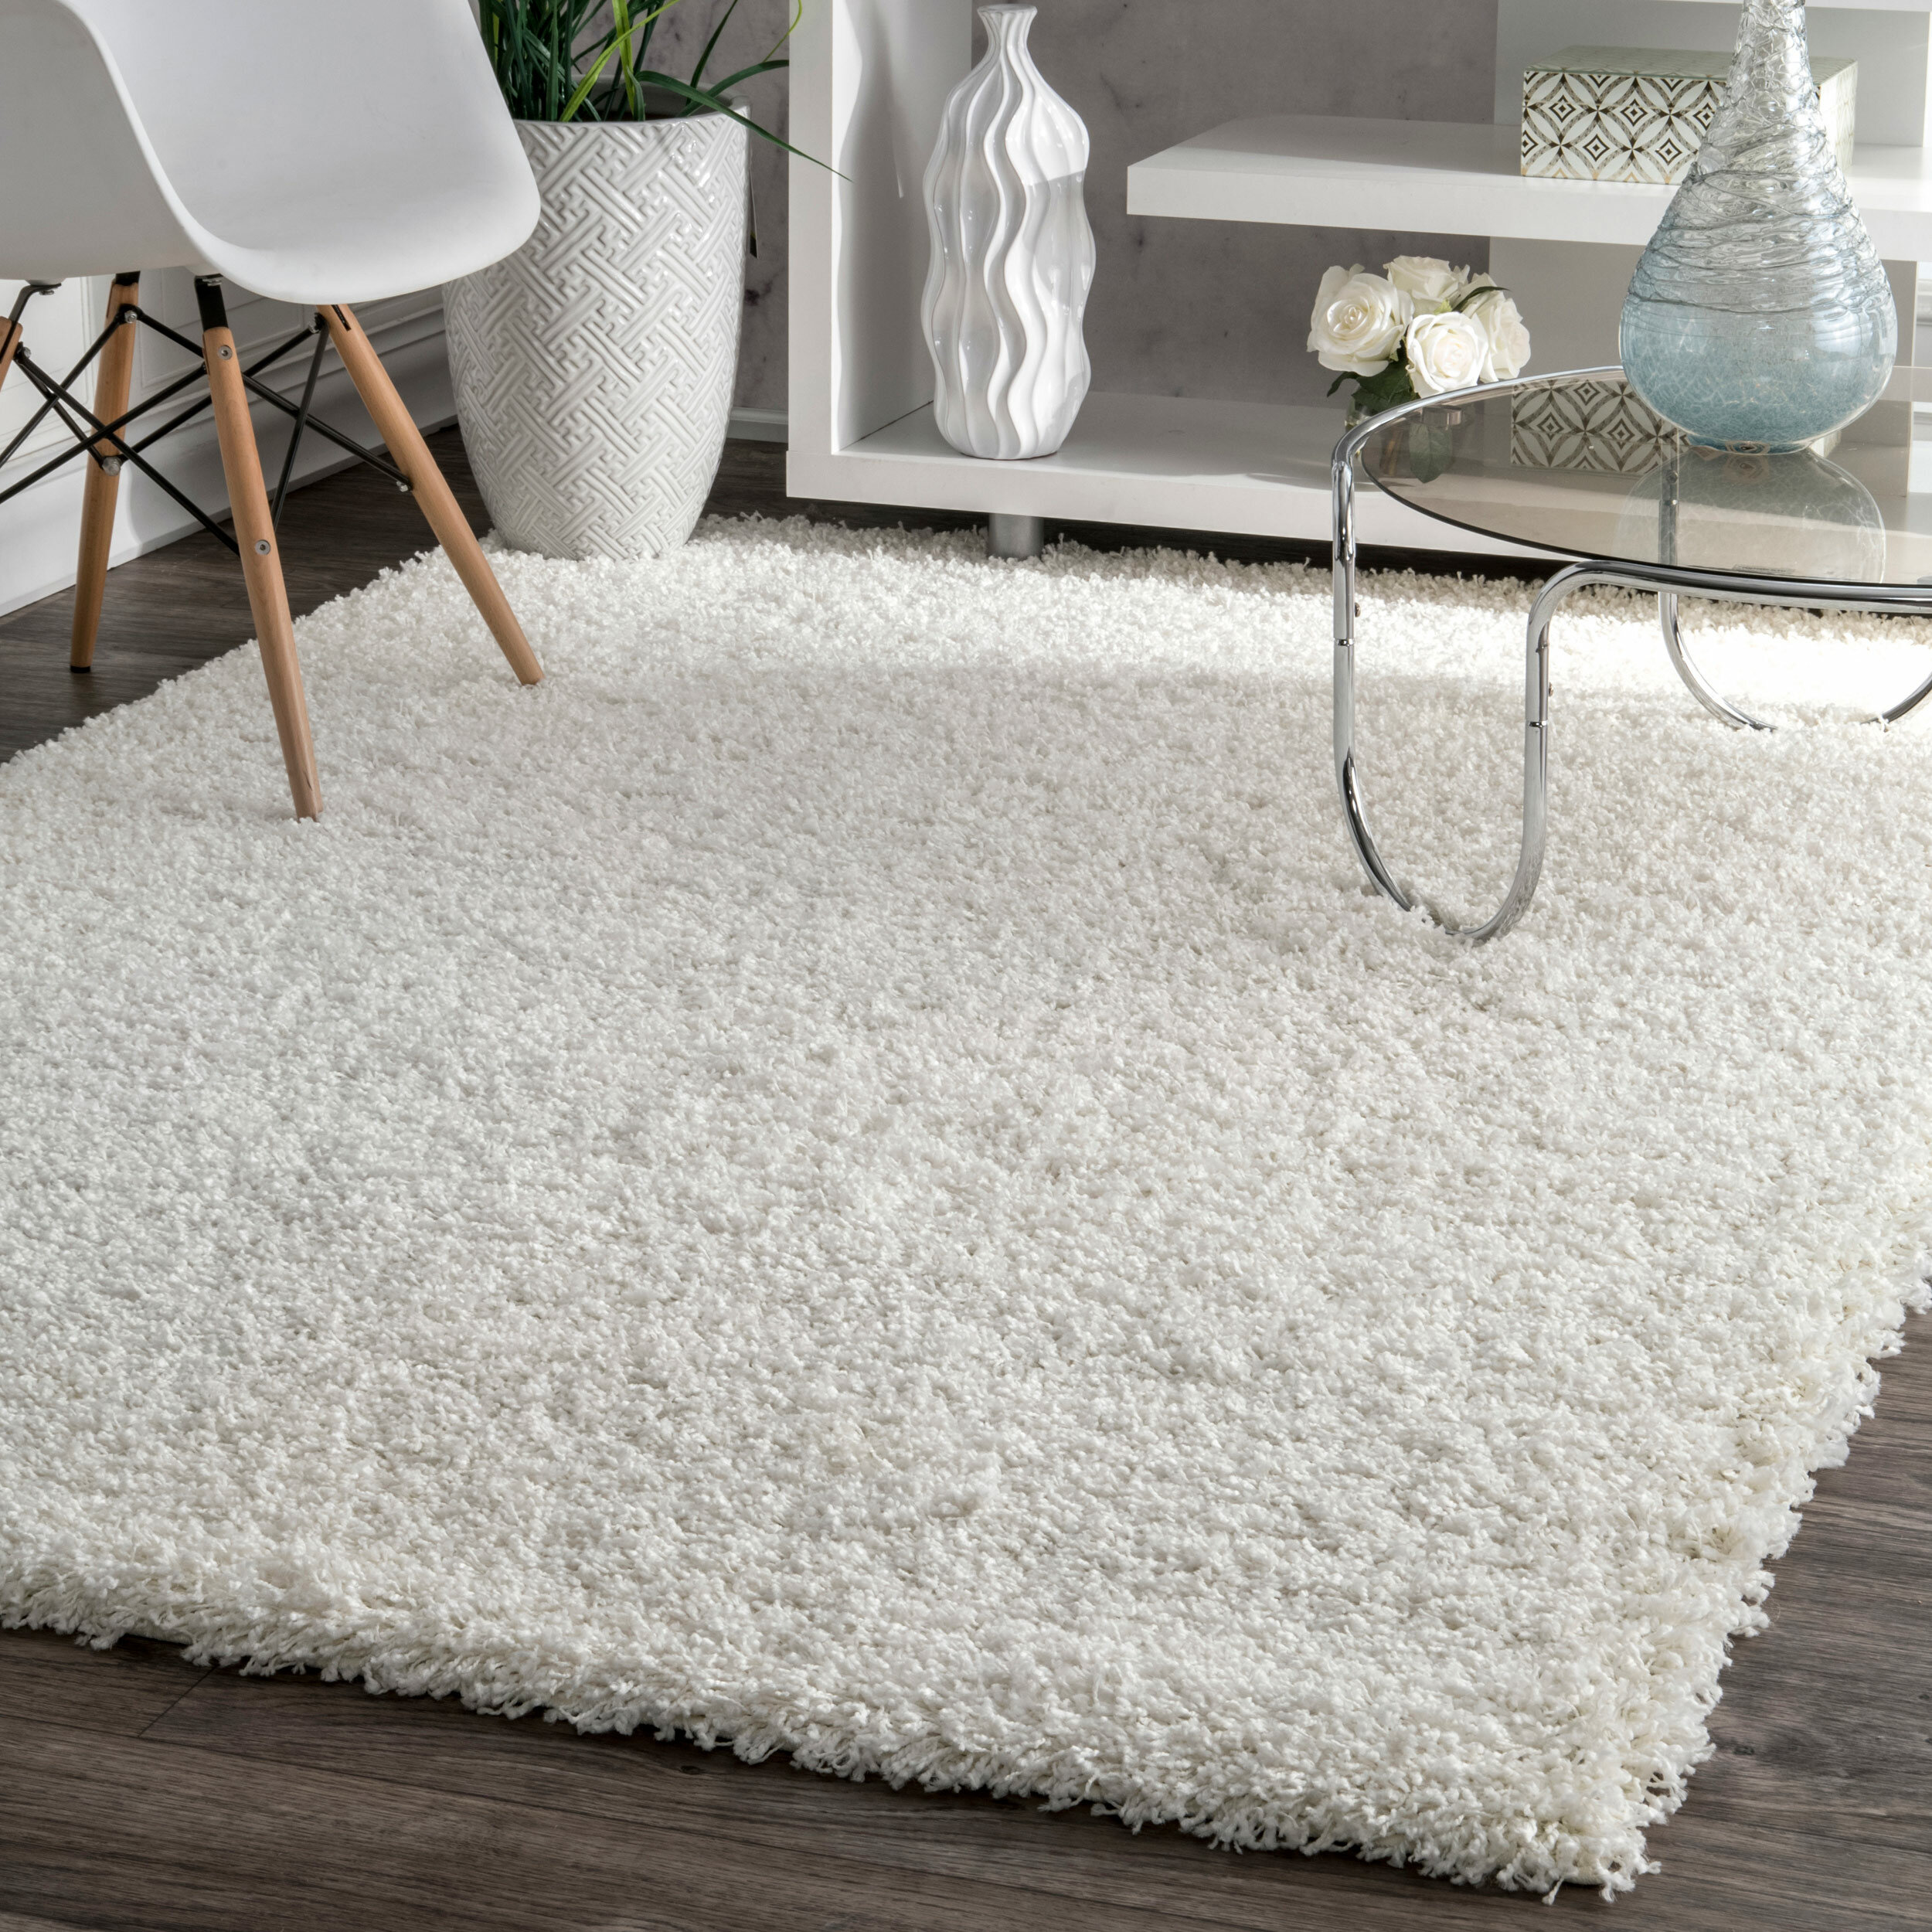 Welford White Shag Area Rug Reviews